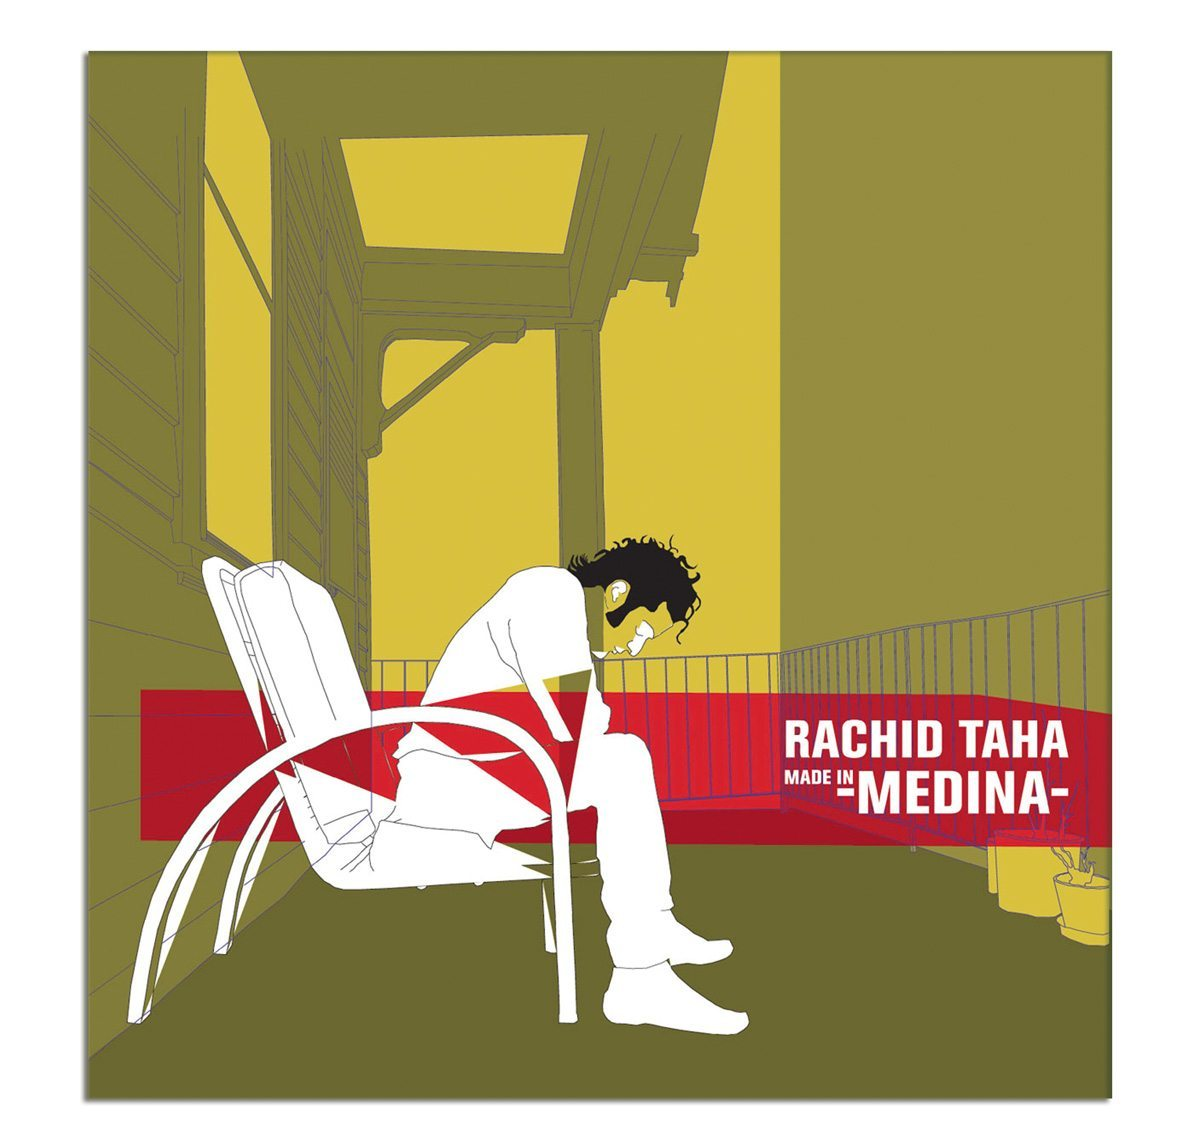 Rachid-Taha-made-in-medina_IchetKar